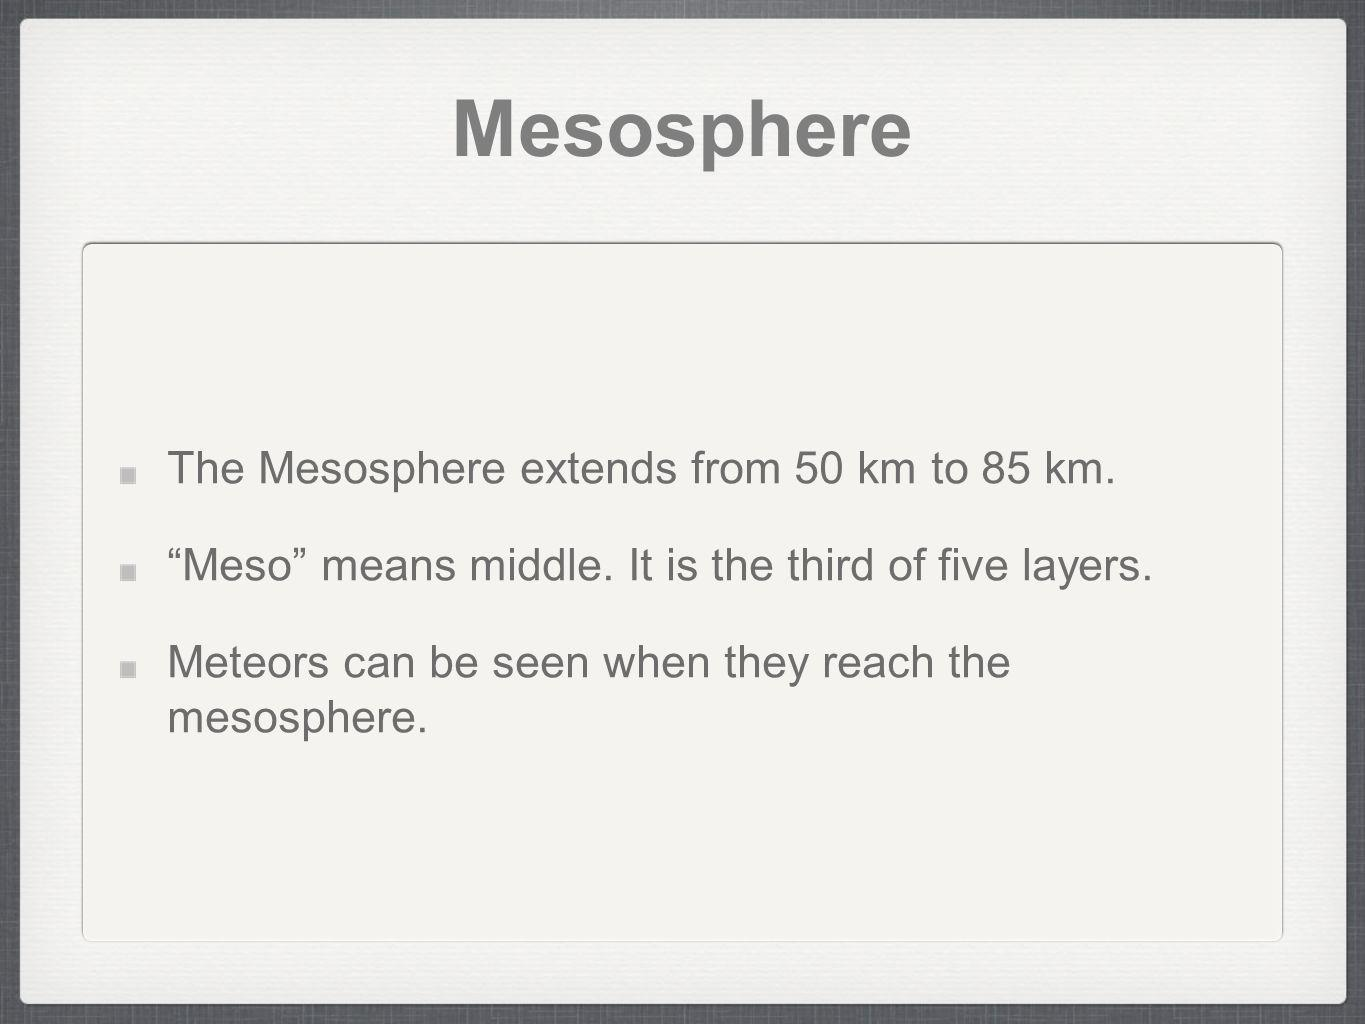 Mesosphere The Mesosphere extends from 50 km to 85 km. Meso means middle. It is the third of five layers. Meteors can be seen when they reach the meso